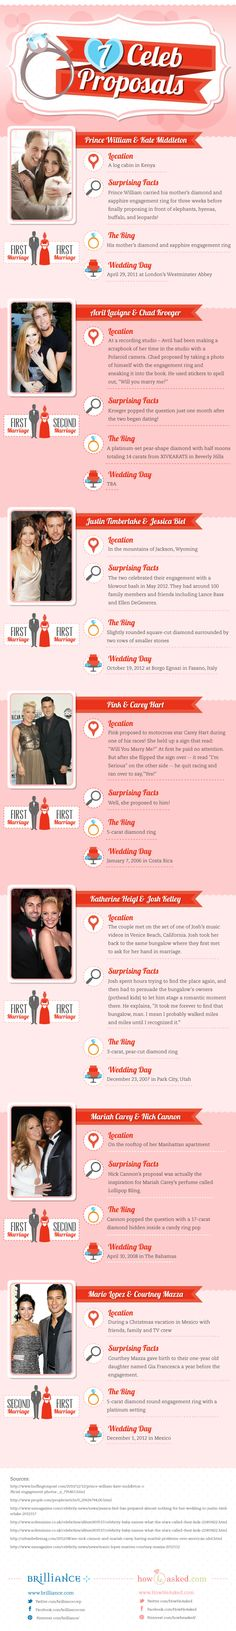 We're thrilled to bring you an infographic in partnership with HowHeAsked.com! We came up with 7 creative celebrity marriage proposals, plus a few surprising facts about each couple. ;) http://www.brilliance.com